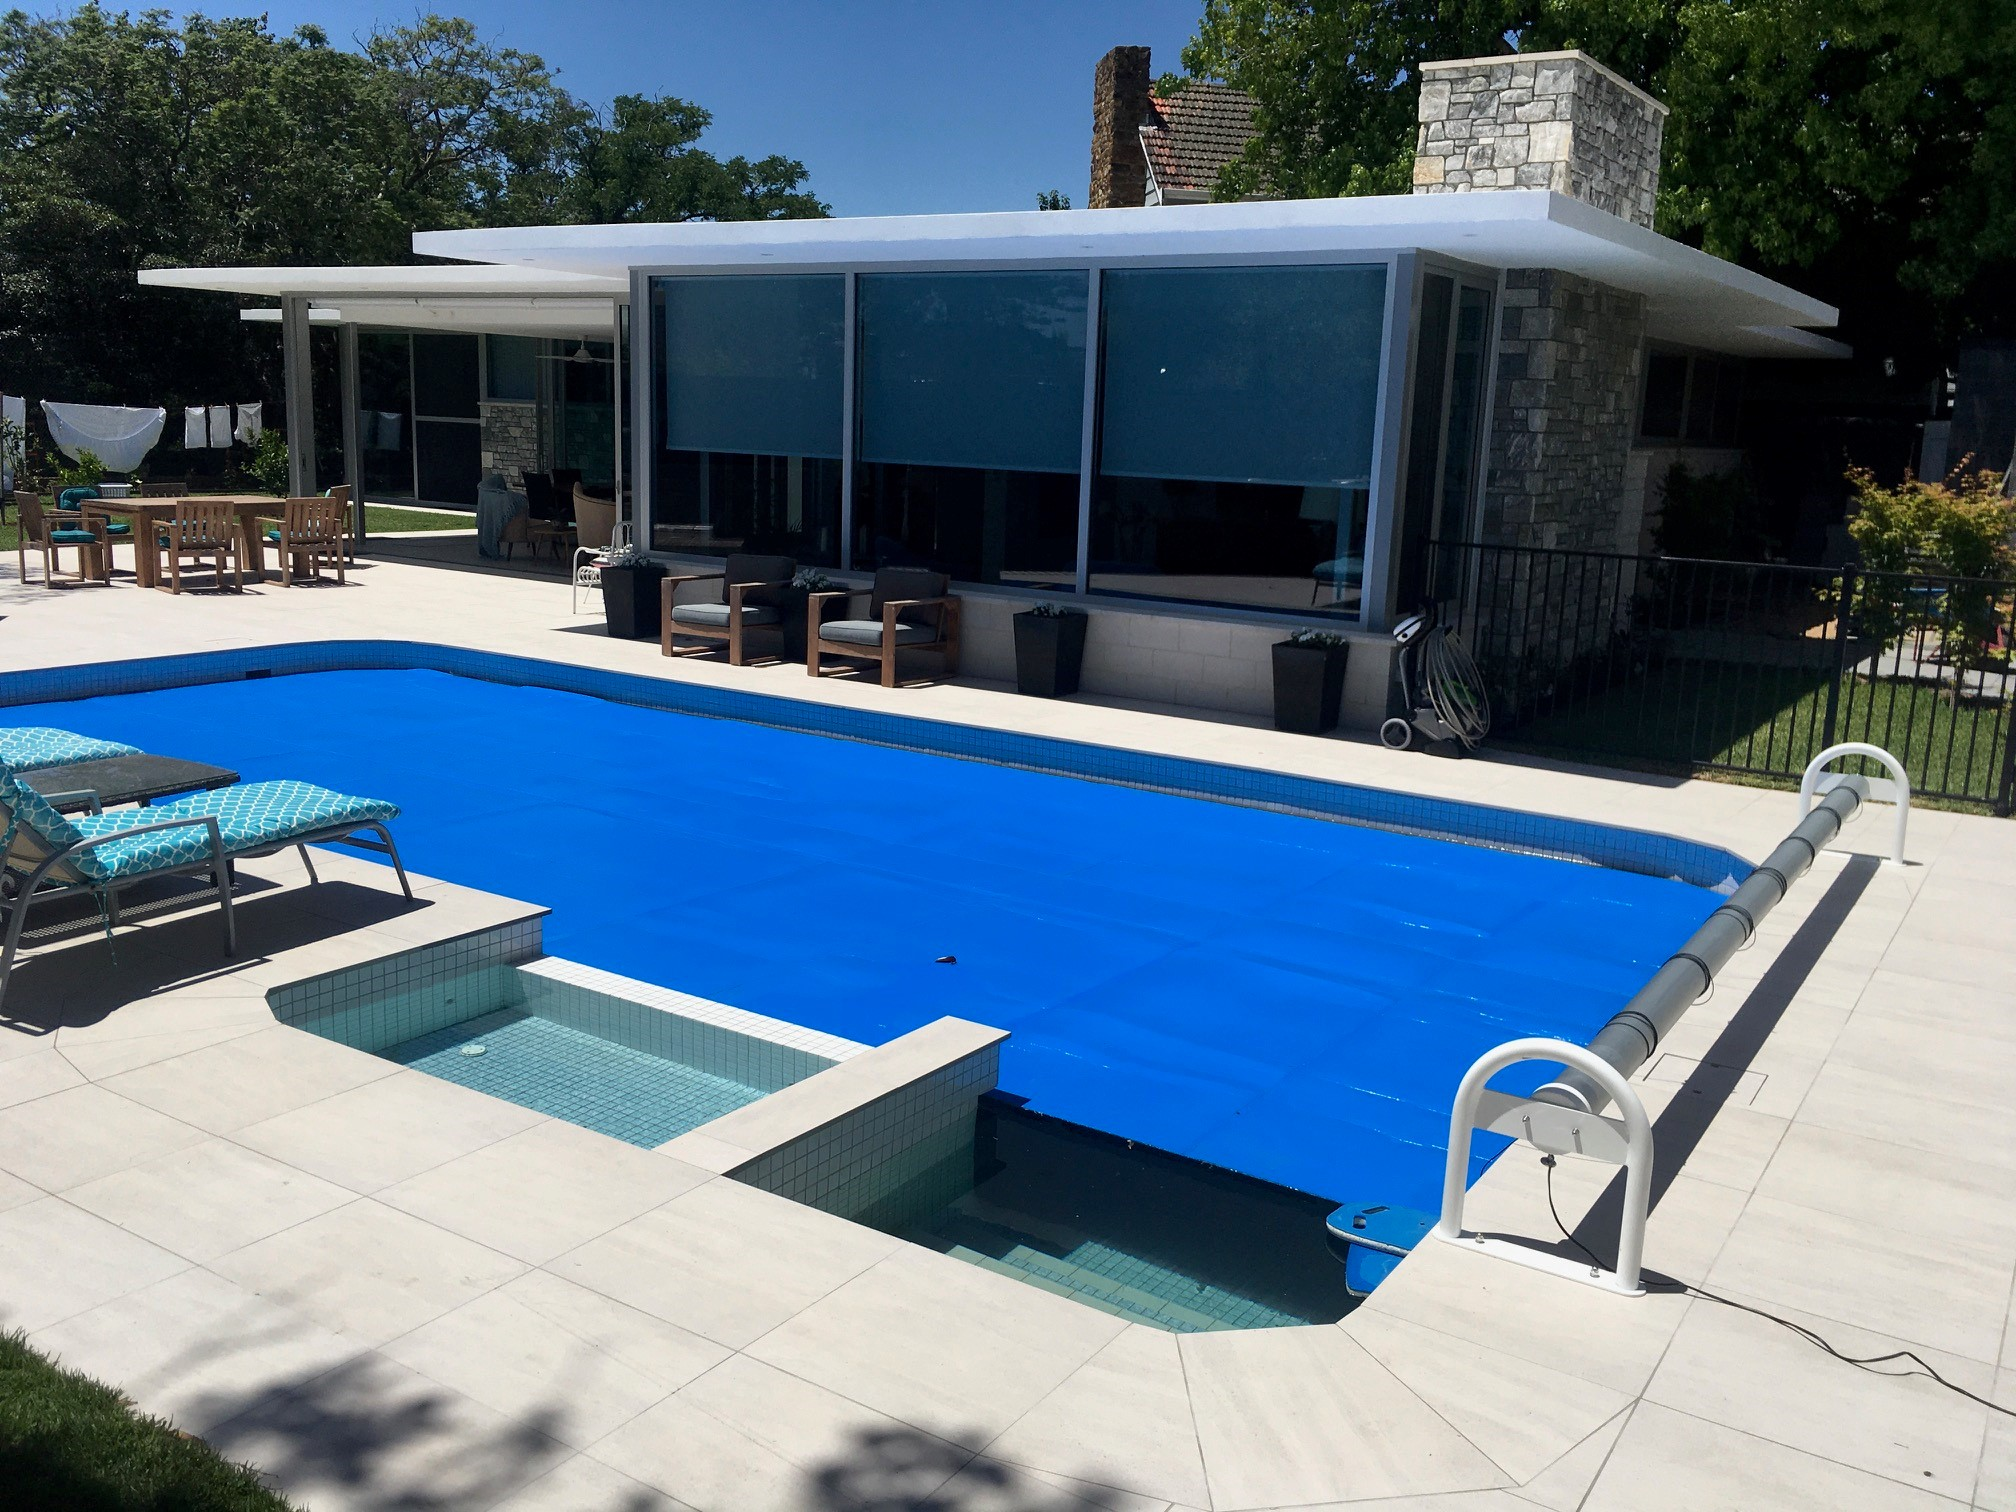 Stationary Auto Pool Cover Roller on outdoor pool in the backyard